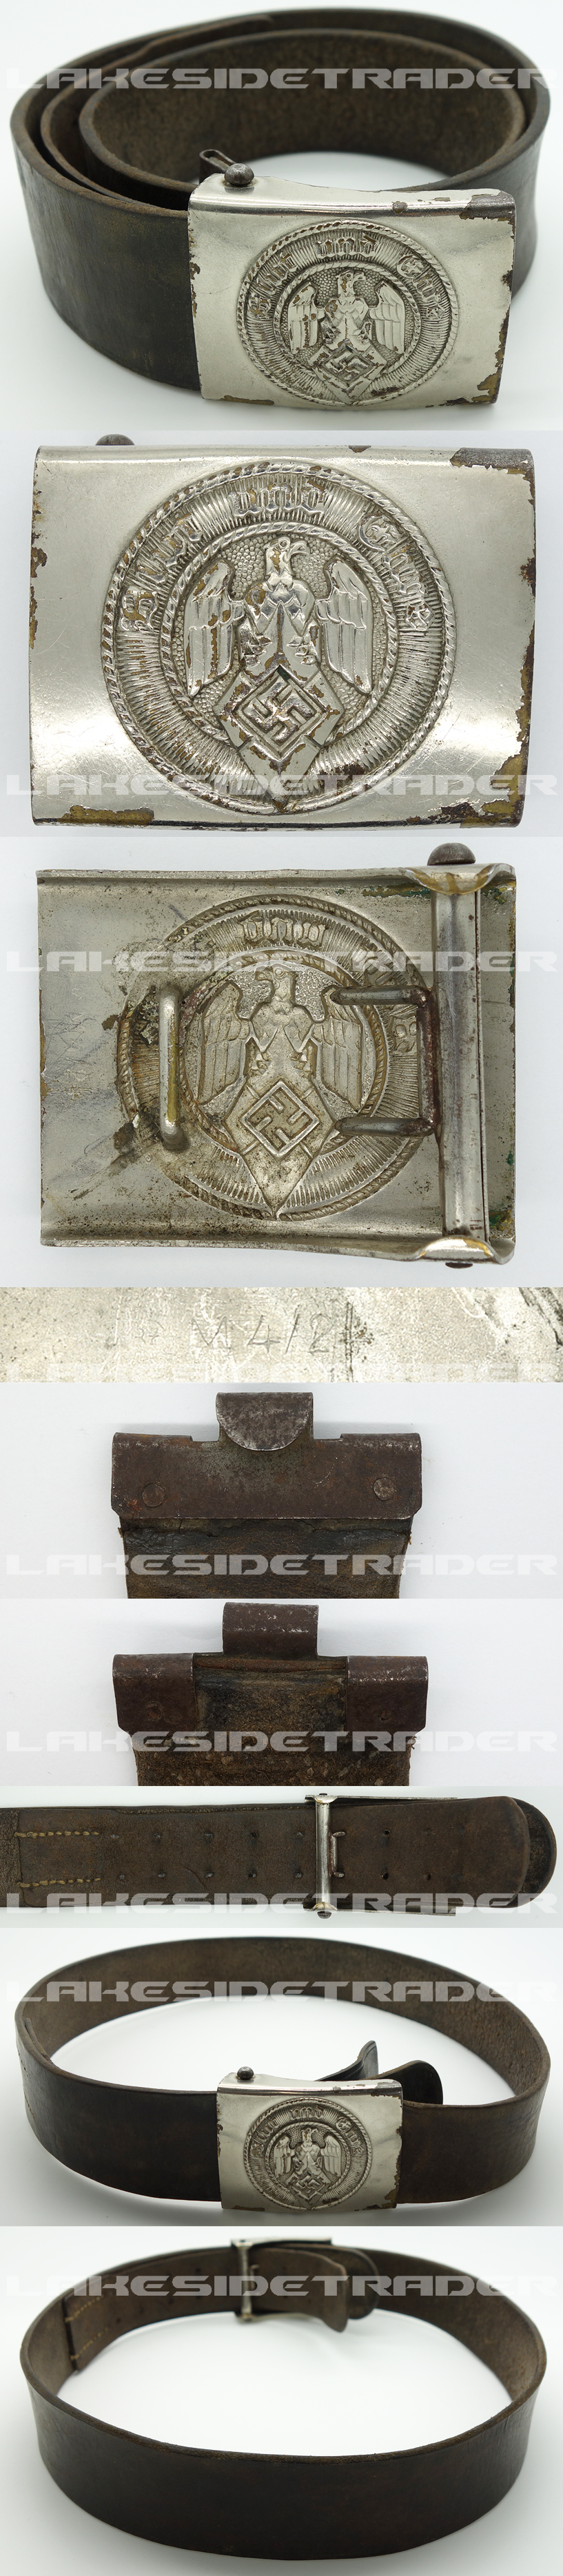 Hitler Youth Belt and Buckle by RZM M4/24